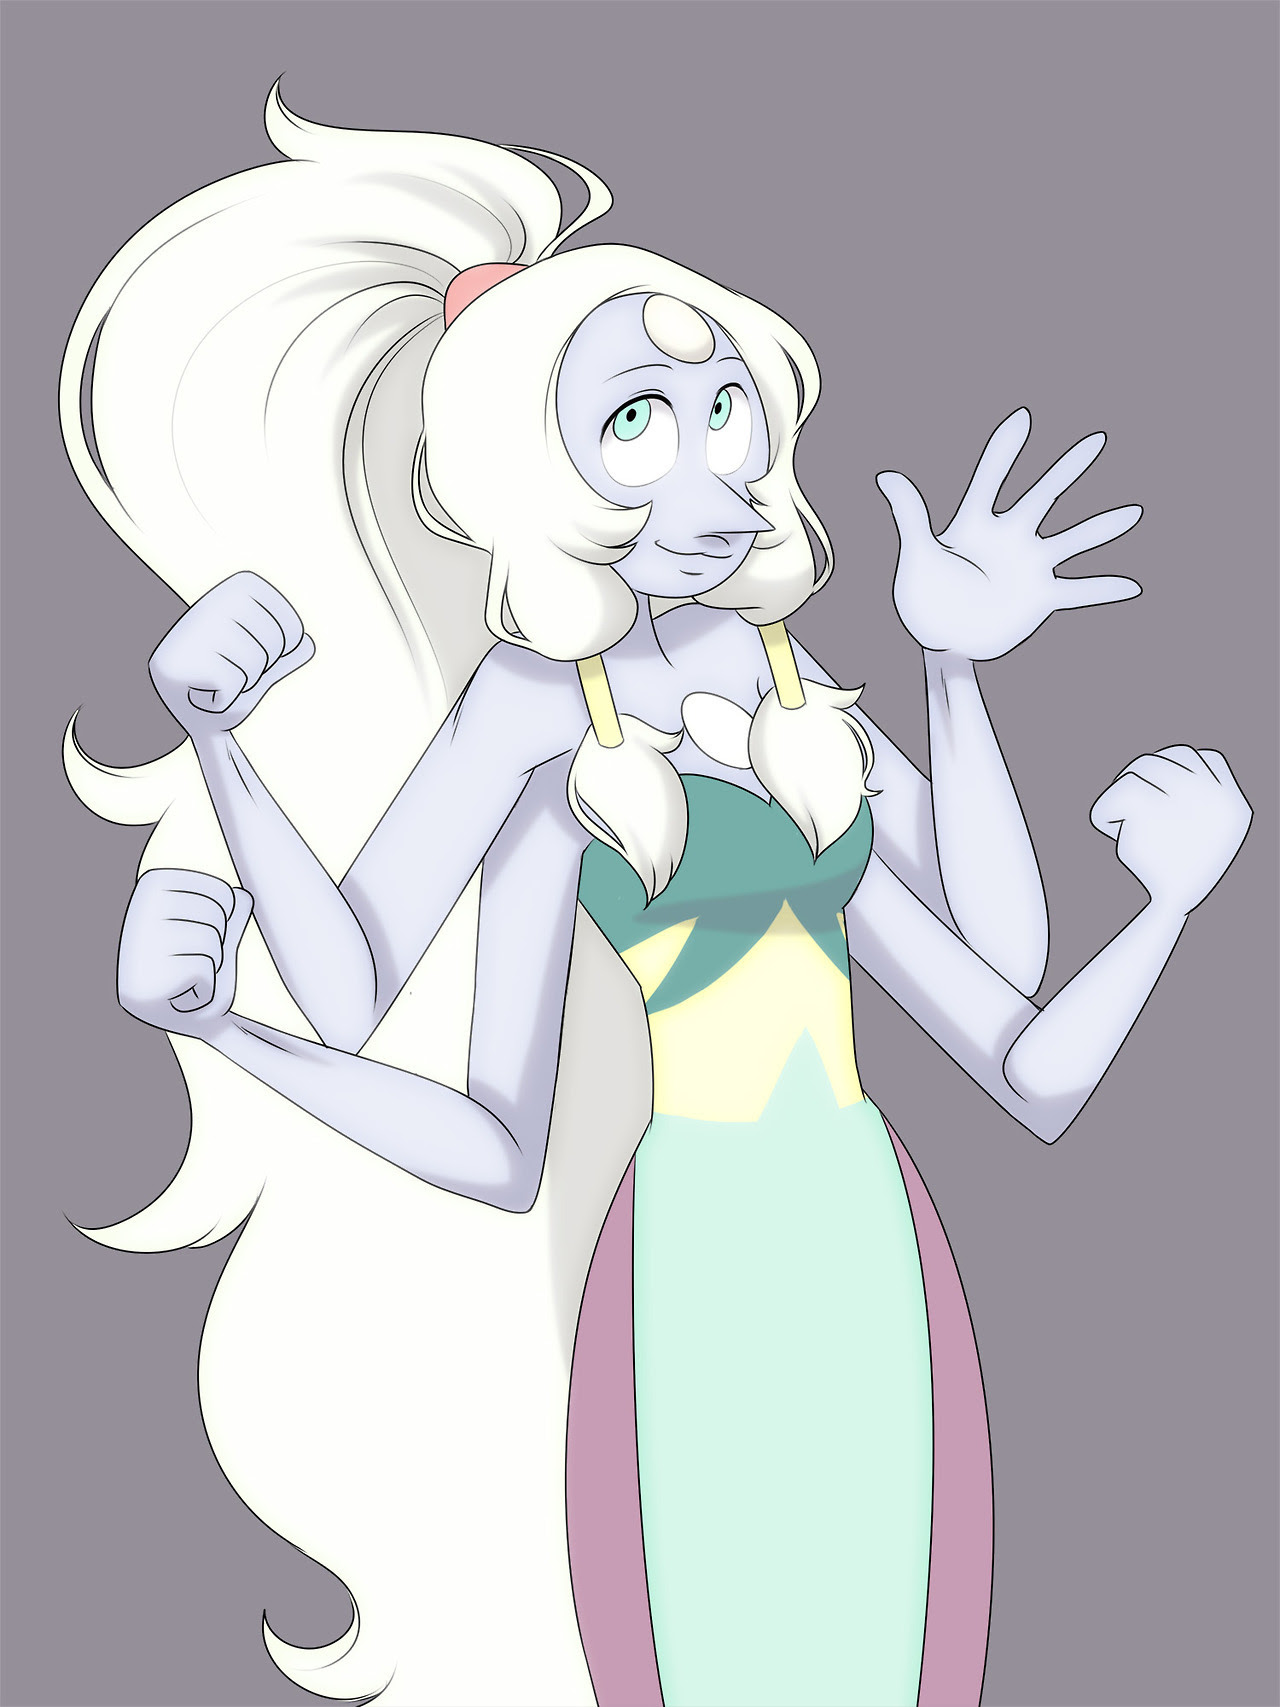 Honestly my favorite thing about Opal (aside from the fact that she's got no business being as attractive as she is) is that she's kind of a dumb fusion. That really resonates with me, being dumb, myself. I swear one day I'll draw her in a decent picture.